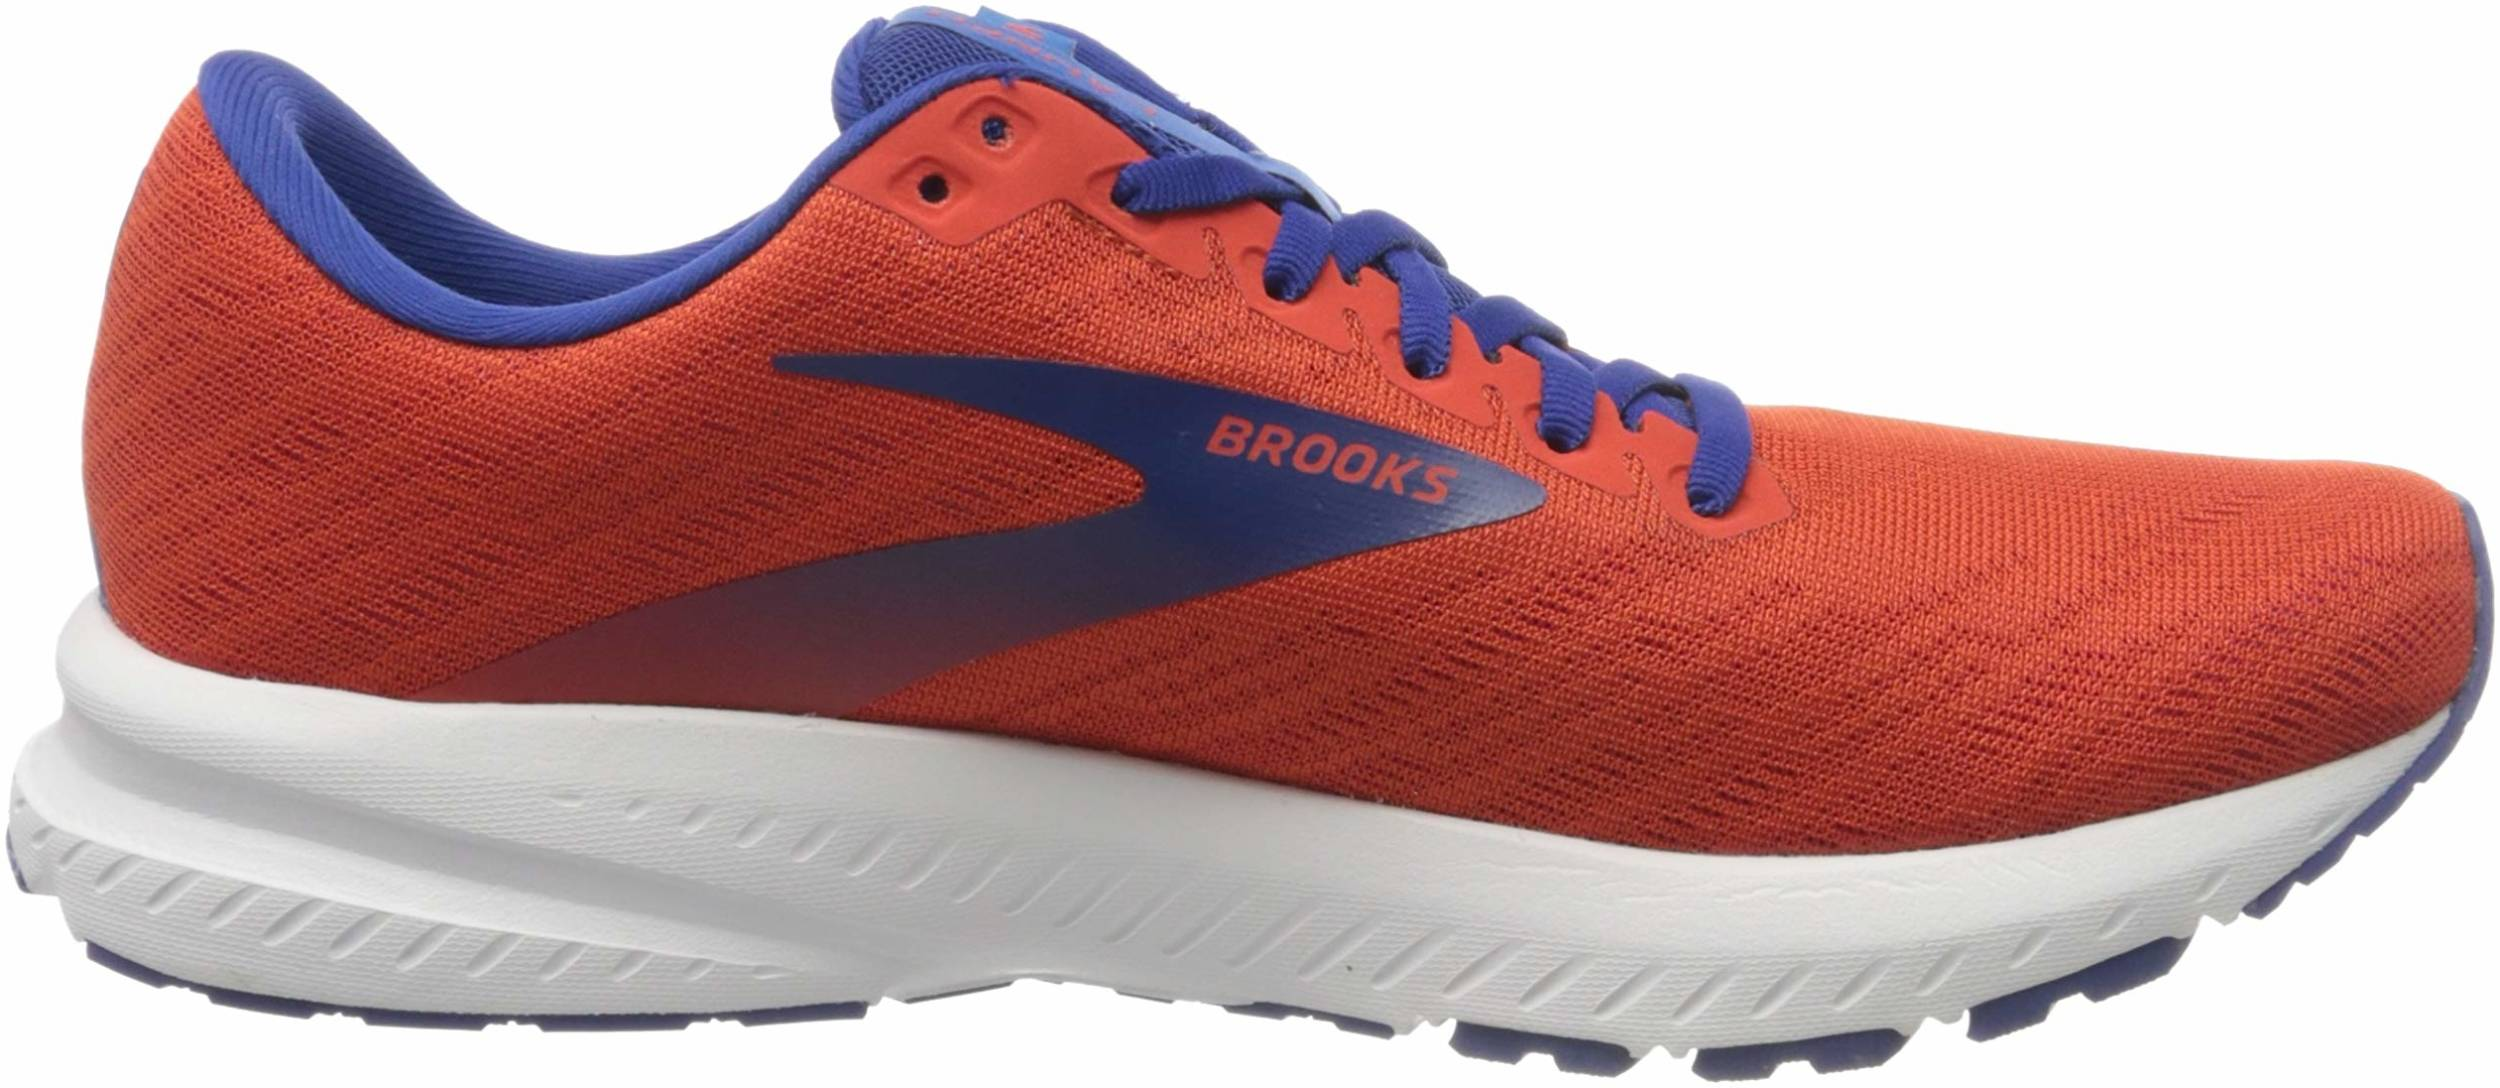 Only £74 + Review of Brooks Launch 7